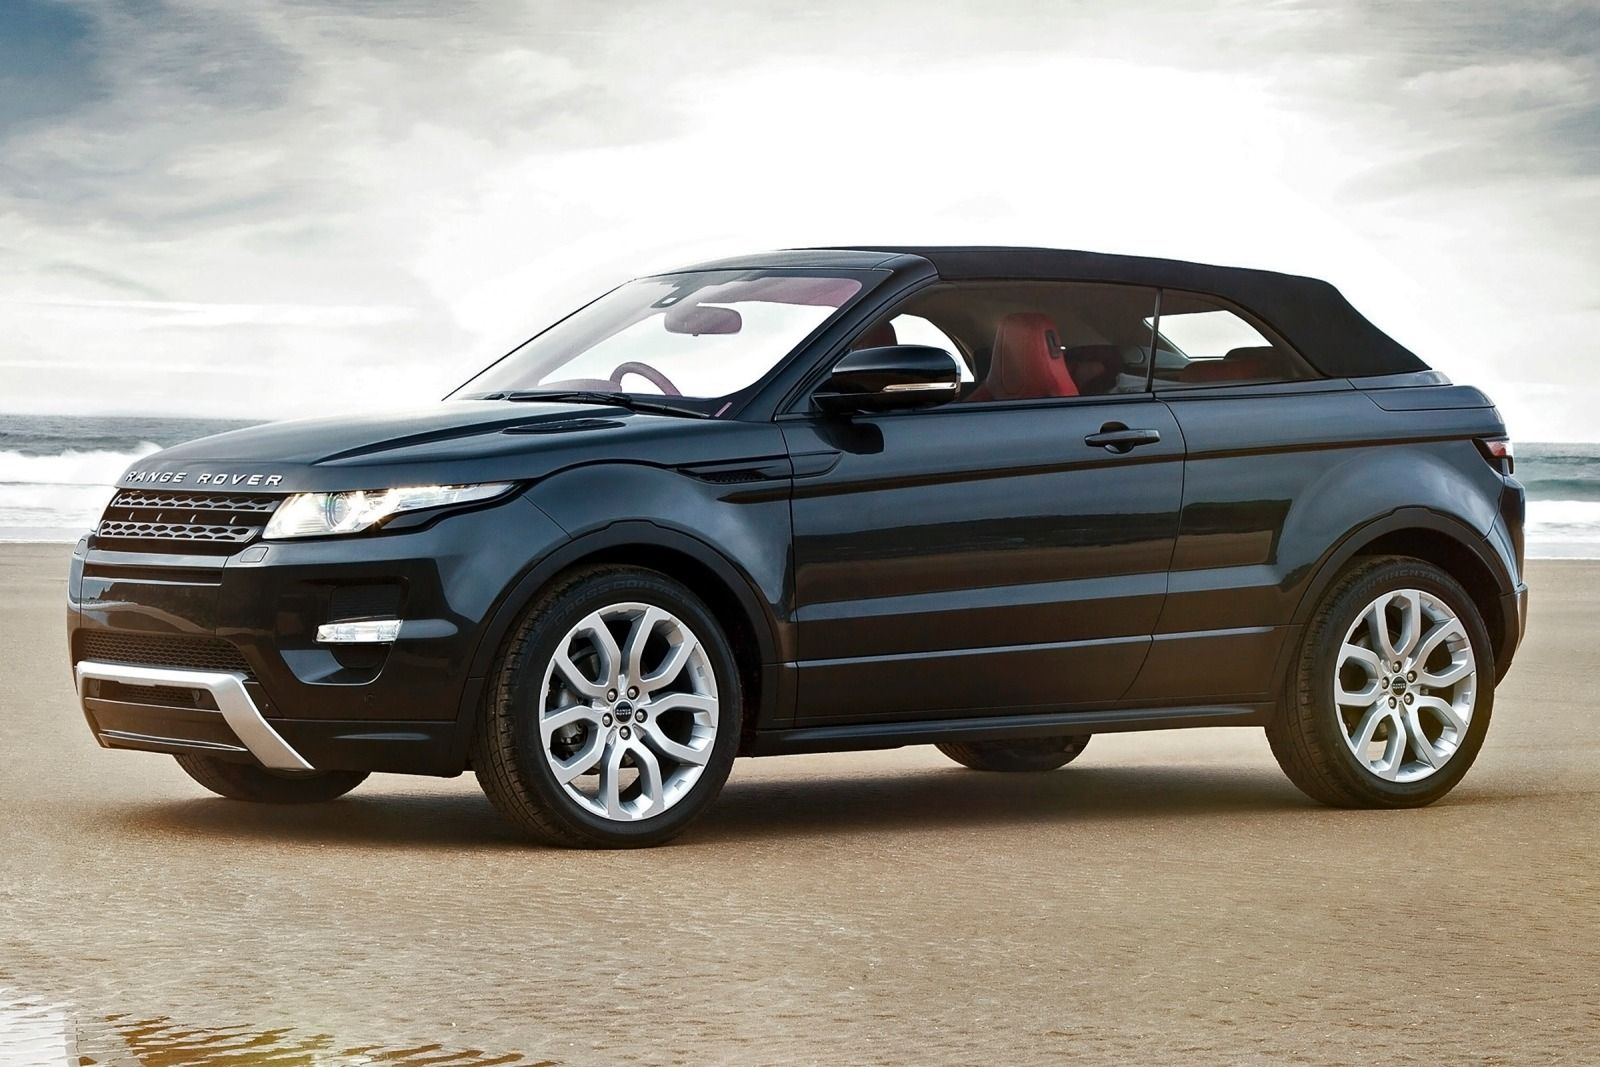 Range Rover Evoque Convertible Sachins